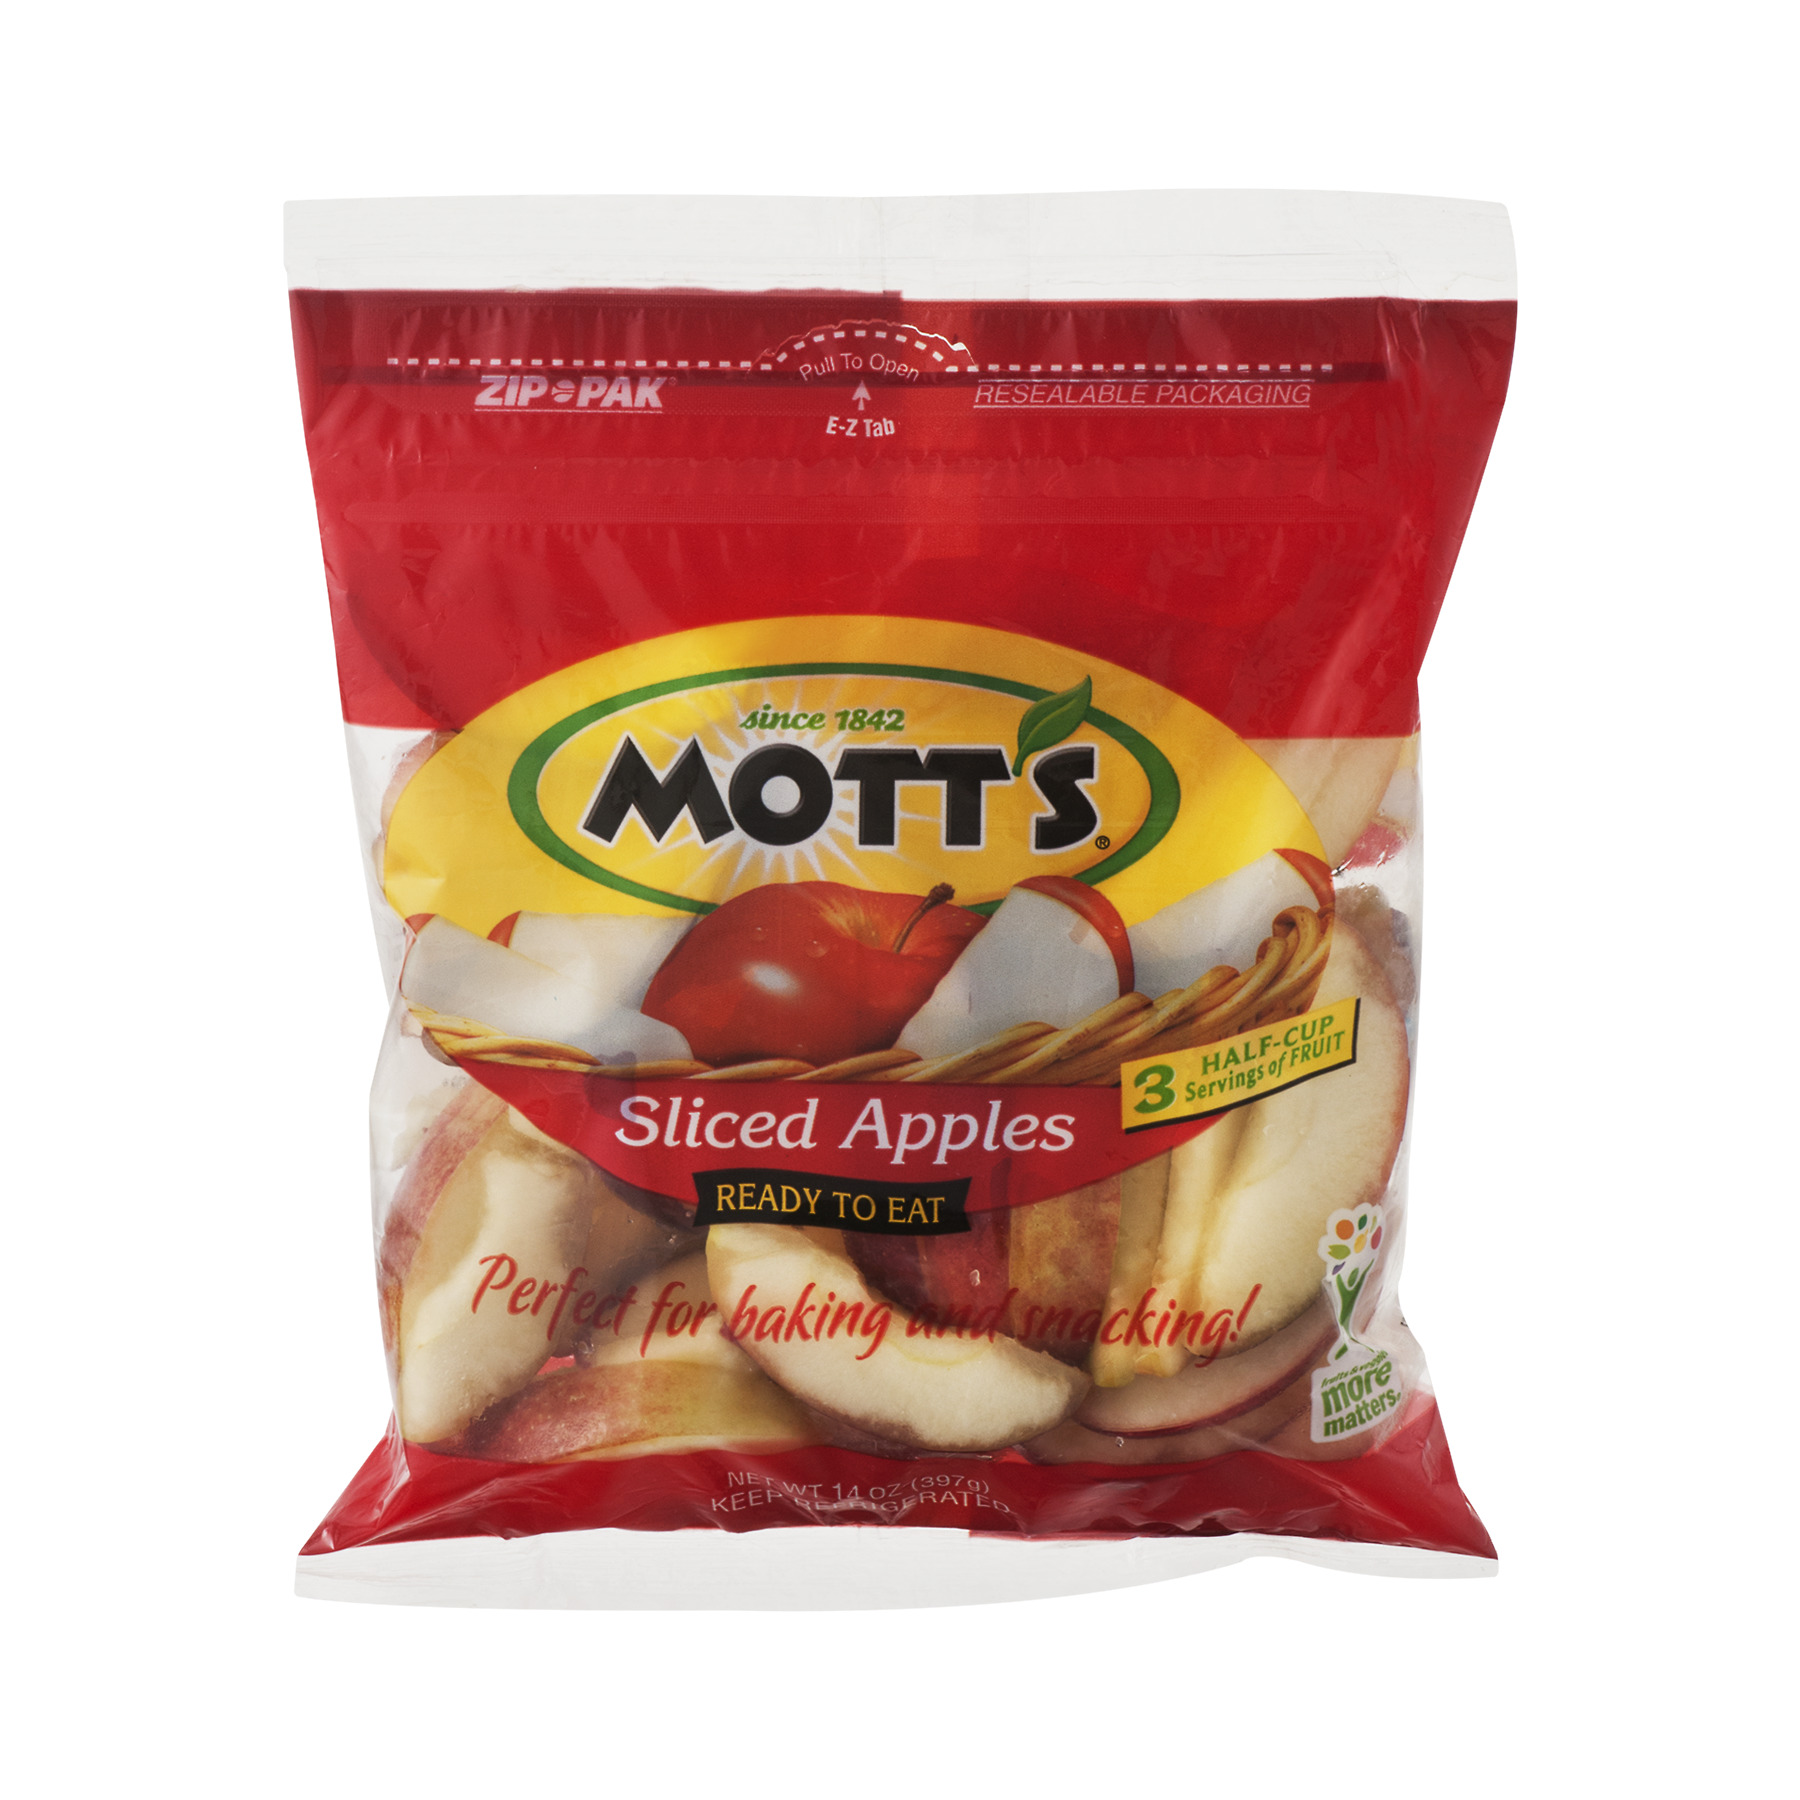 MOTTS SLC SNGL FRT APL BAG